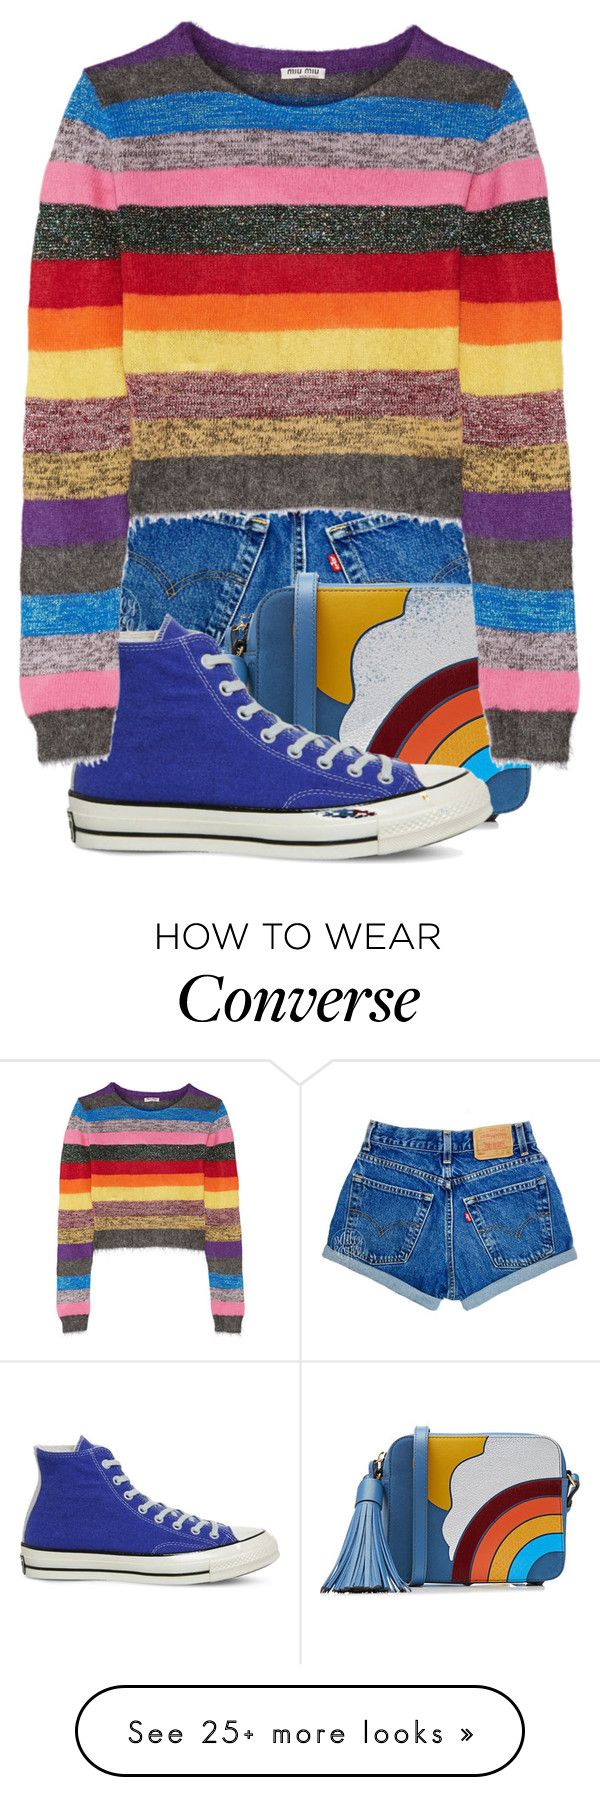 """""""Fashion Rainbow"""" by thelunaluchicloset on Polyvore featuring Anya Hindmarch, Converse and Miu Miu"""